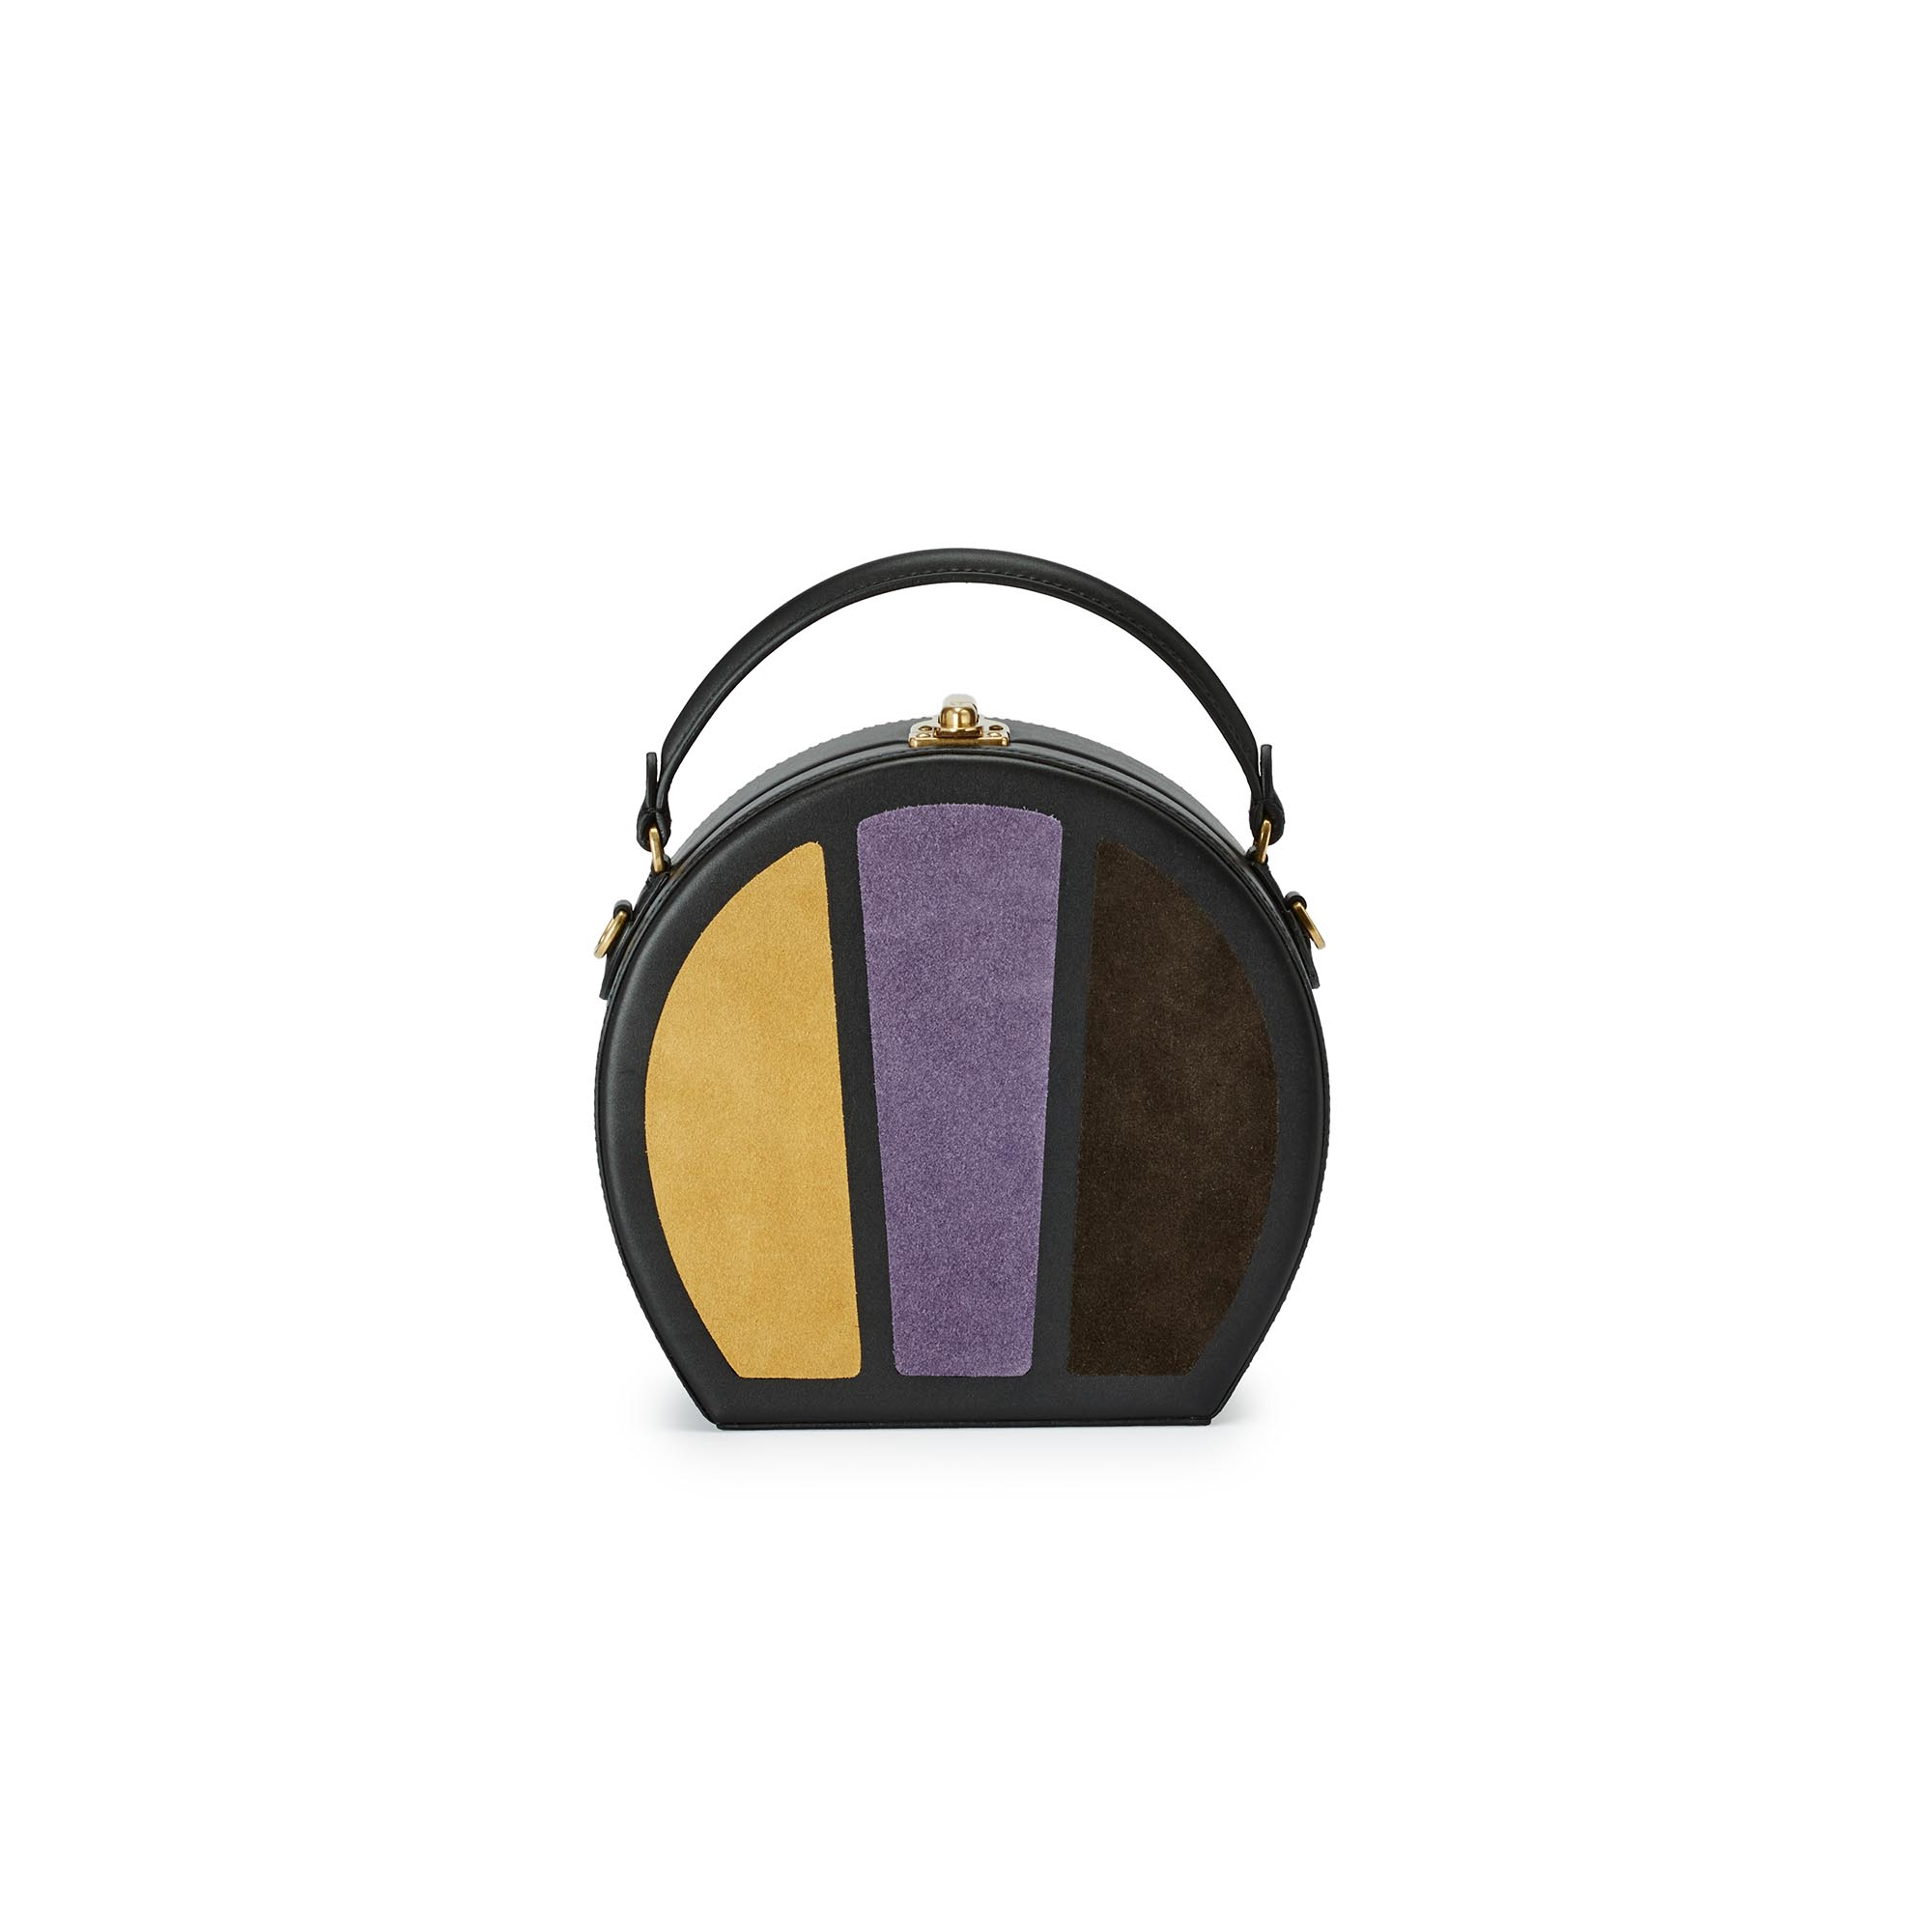 Regular-Bertoncina-yellow-purple-brown-suede-bag-Bertoni-1949_02